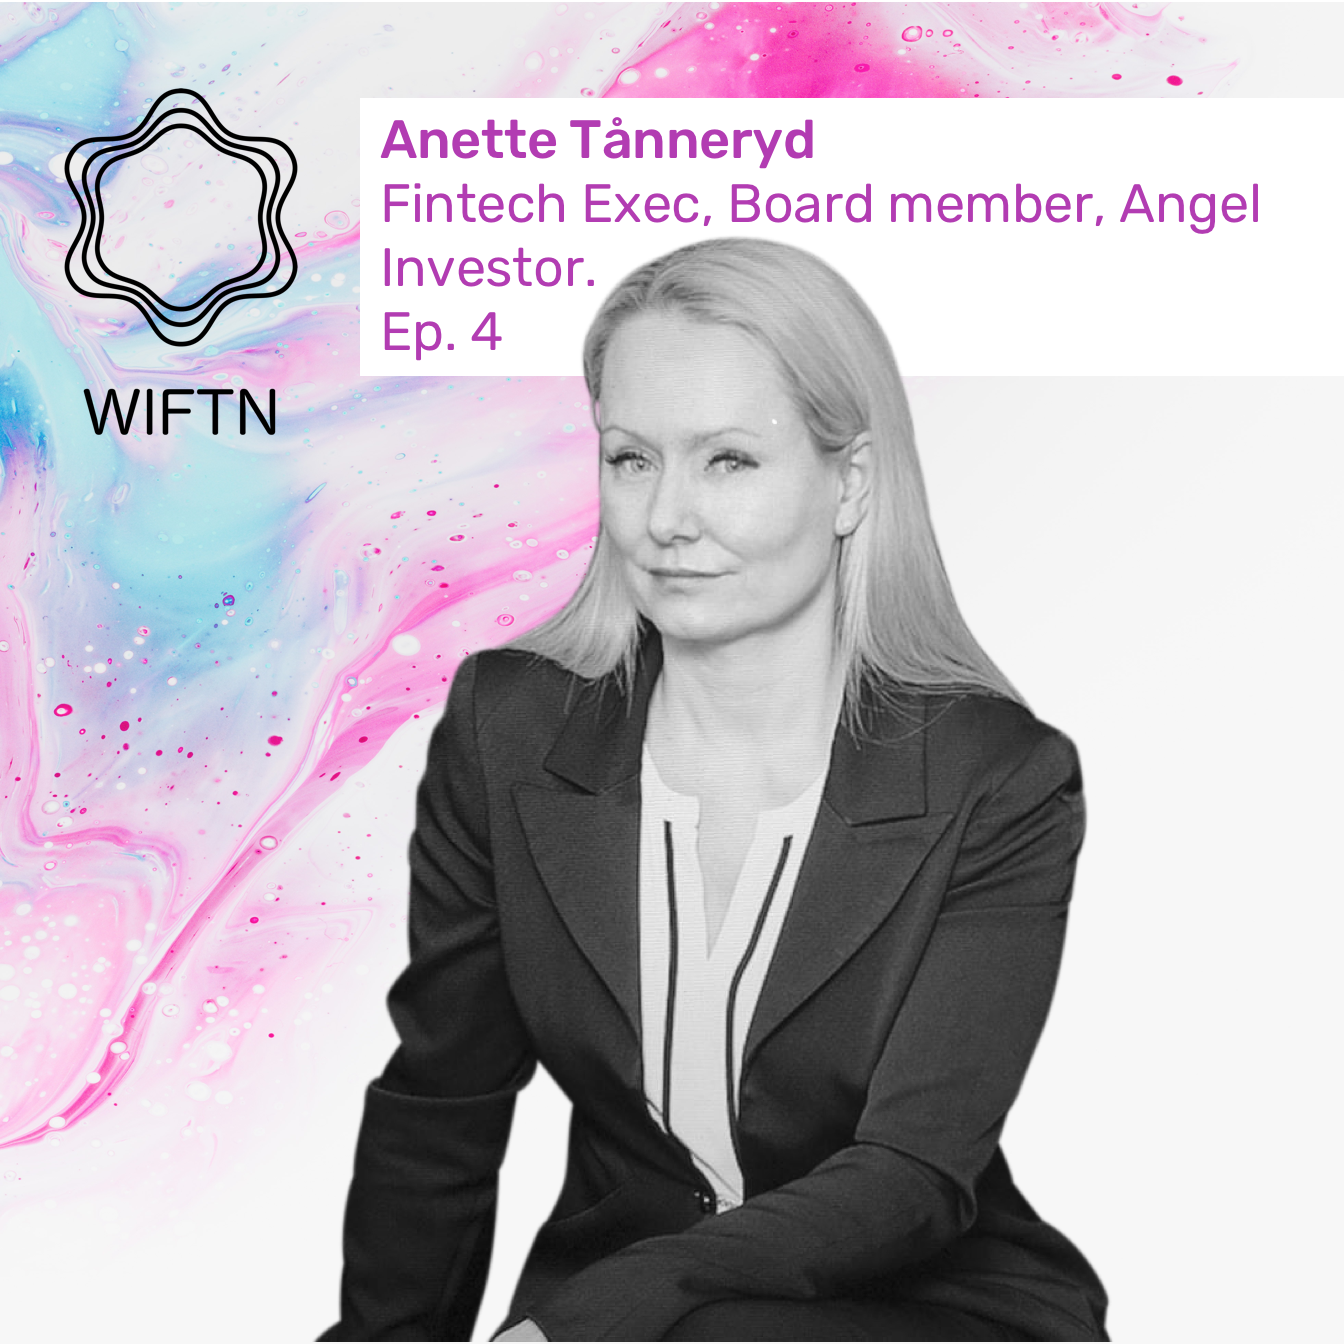 Ep.4Anette Tånneryd - Ever wondered what it takes to become a board member? An angel investor? Curious to hear it from a person who has had a career ranging from entrepreneur, to Fortune 500 and back again?Then don't miss out this episode with Anette Tånneryd.Link to episode